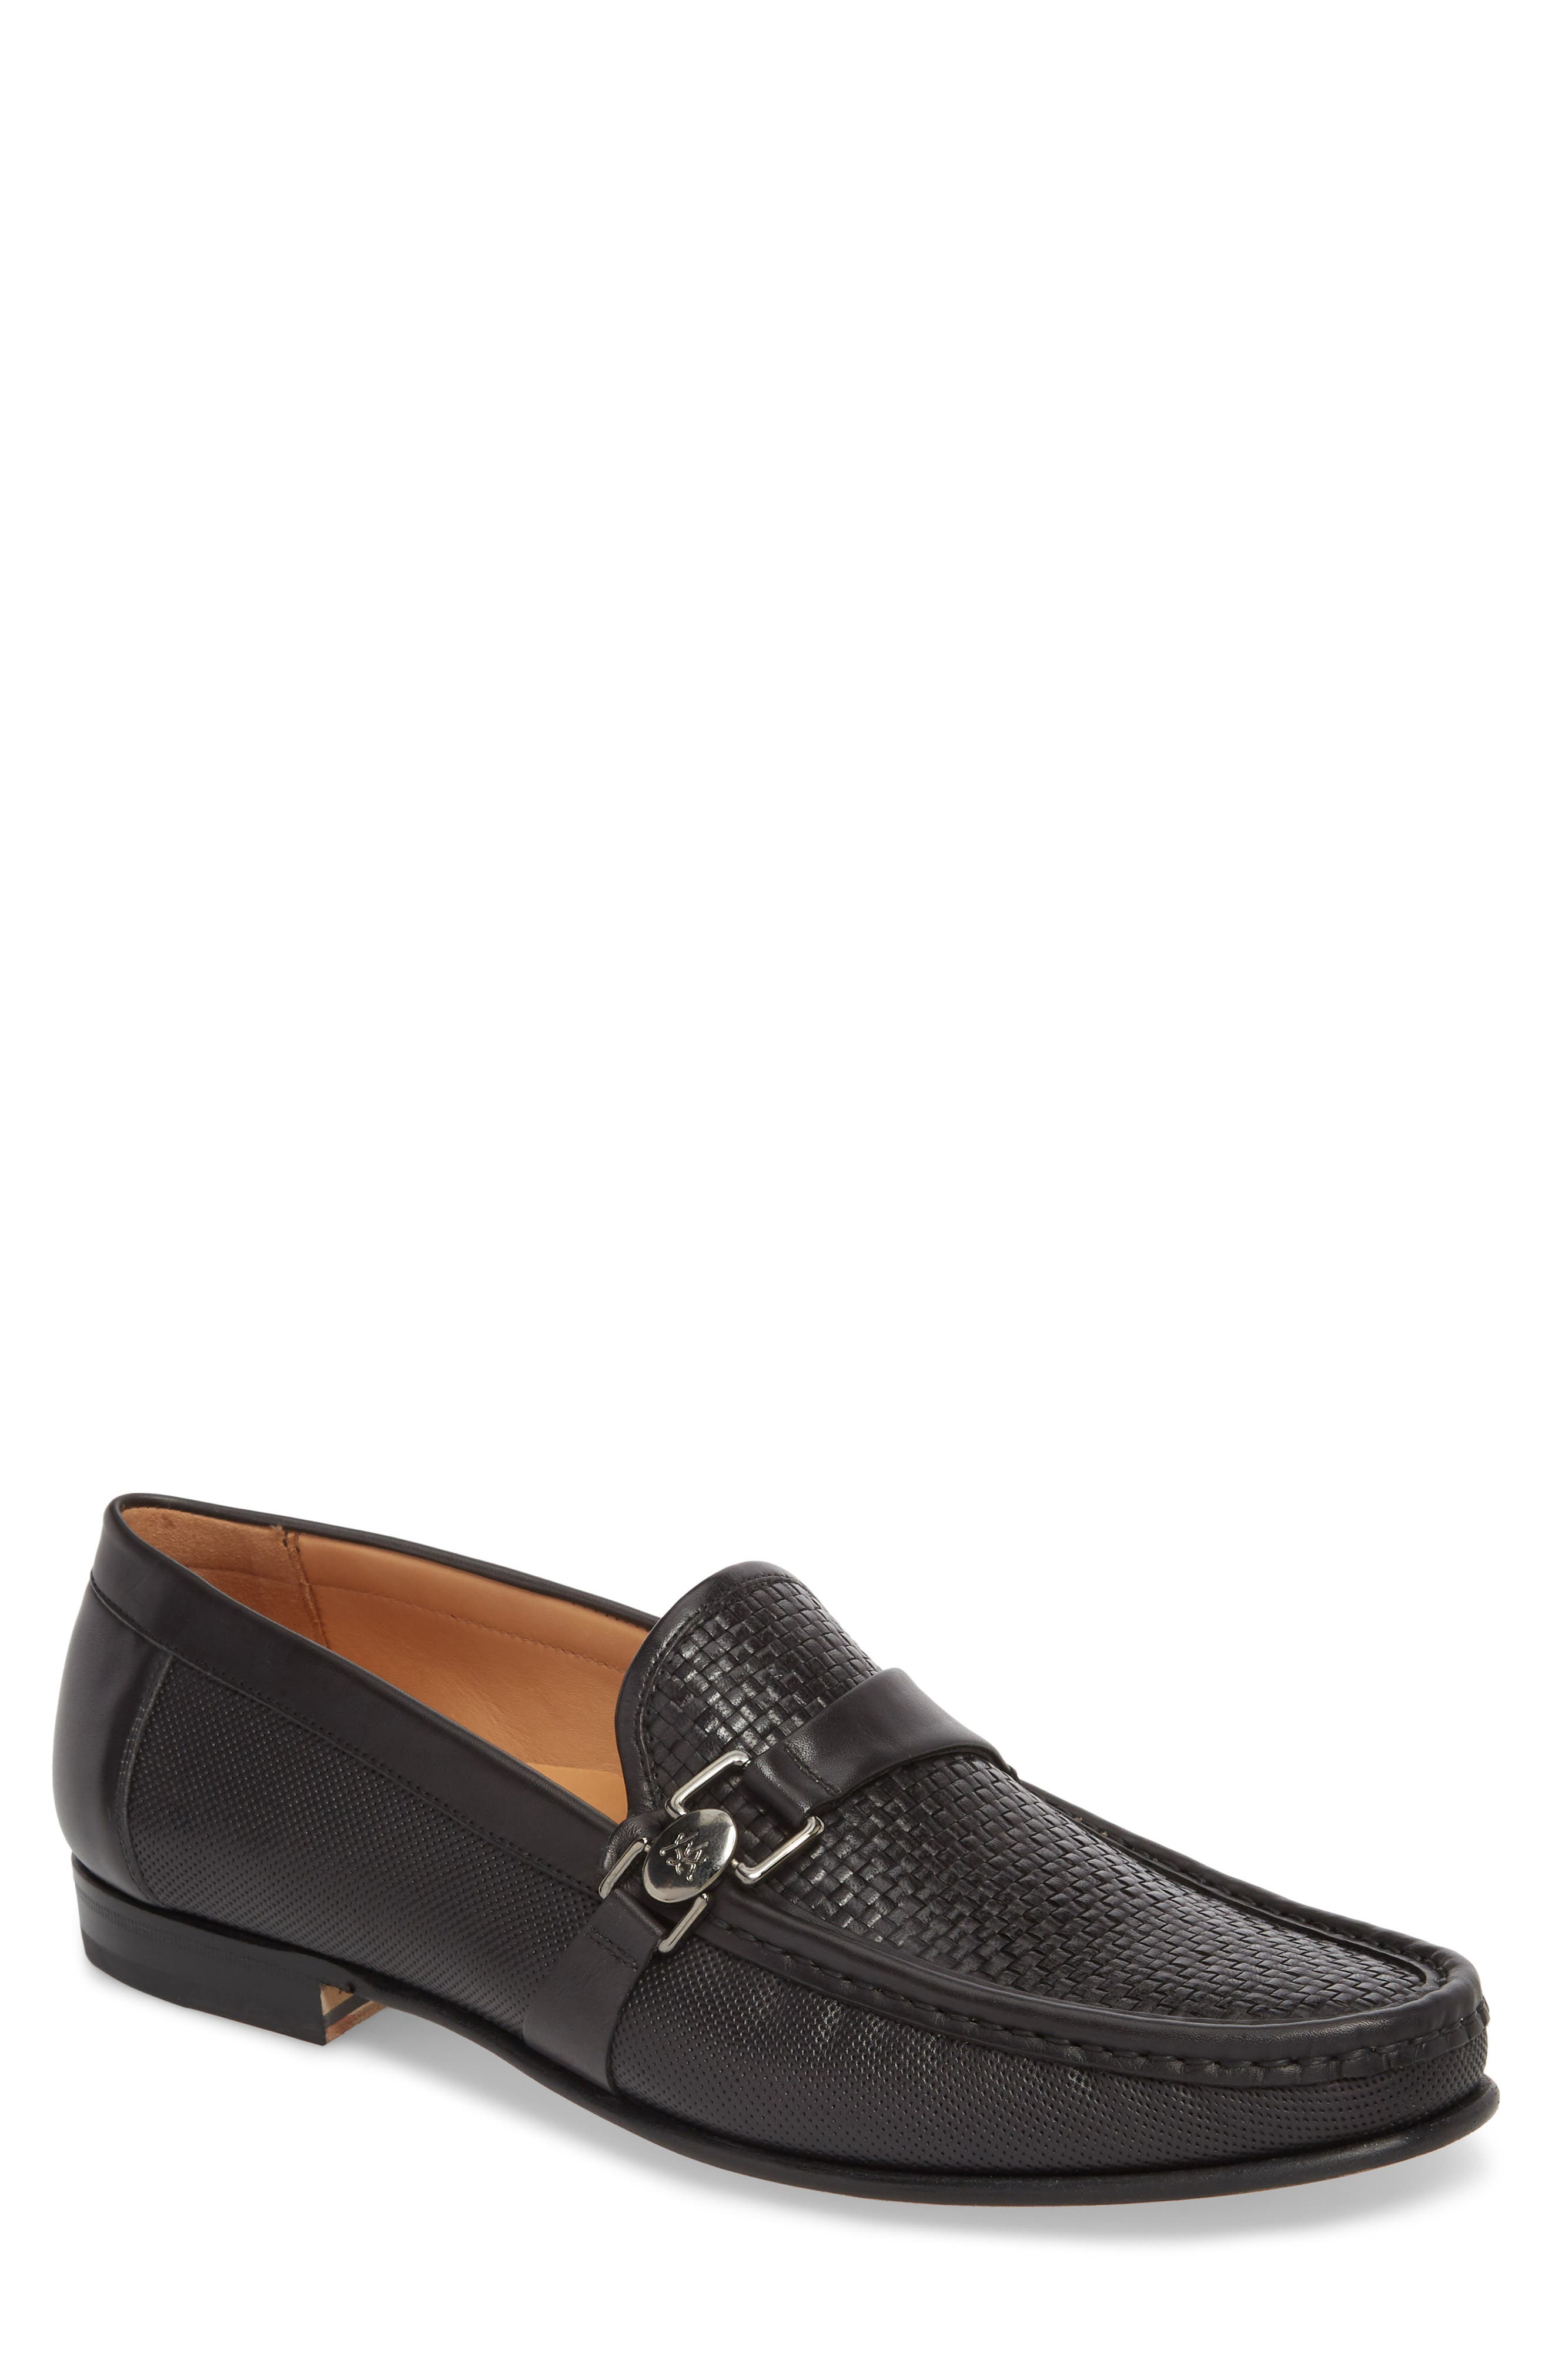 Horatio Woven Moc Toe Loafer,                         Main,                         color, Black Leather